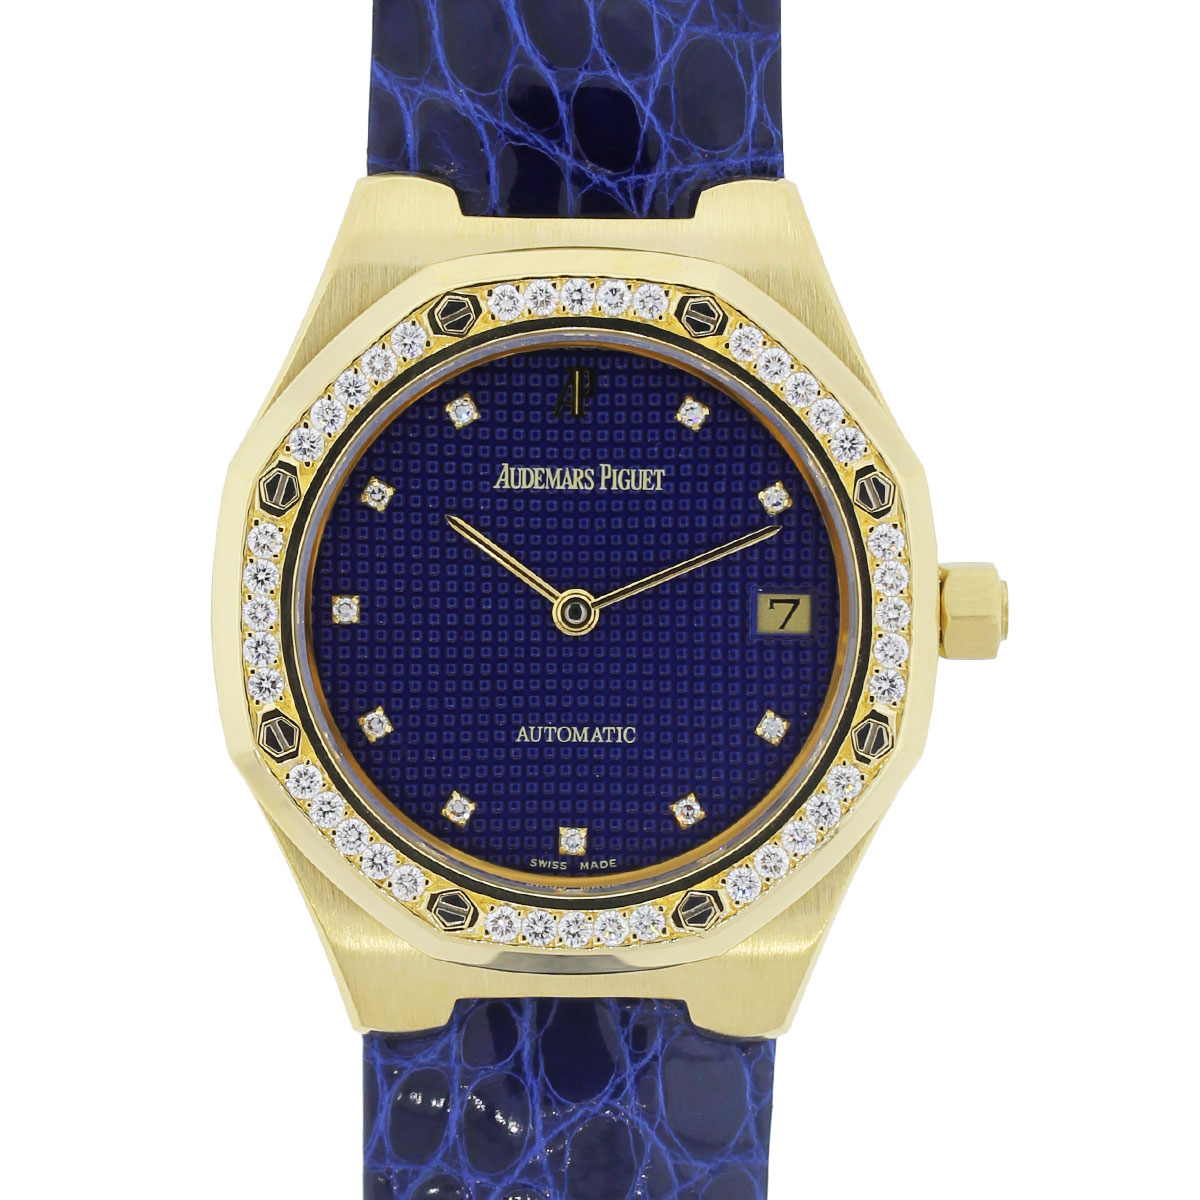 You are viewing this Audemars Piguet Royal Oak 18k Gold Diamond Blue Dial Watch!